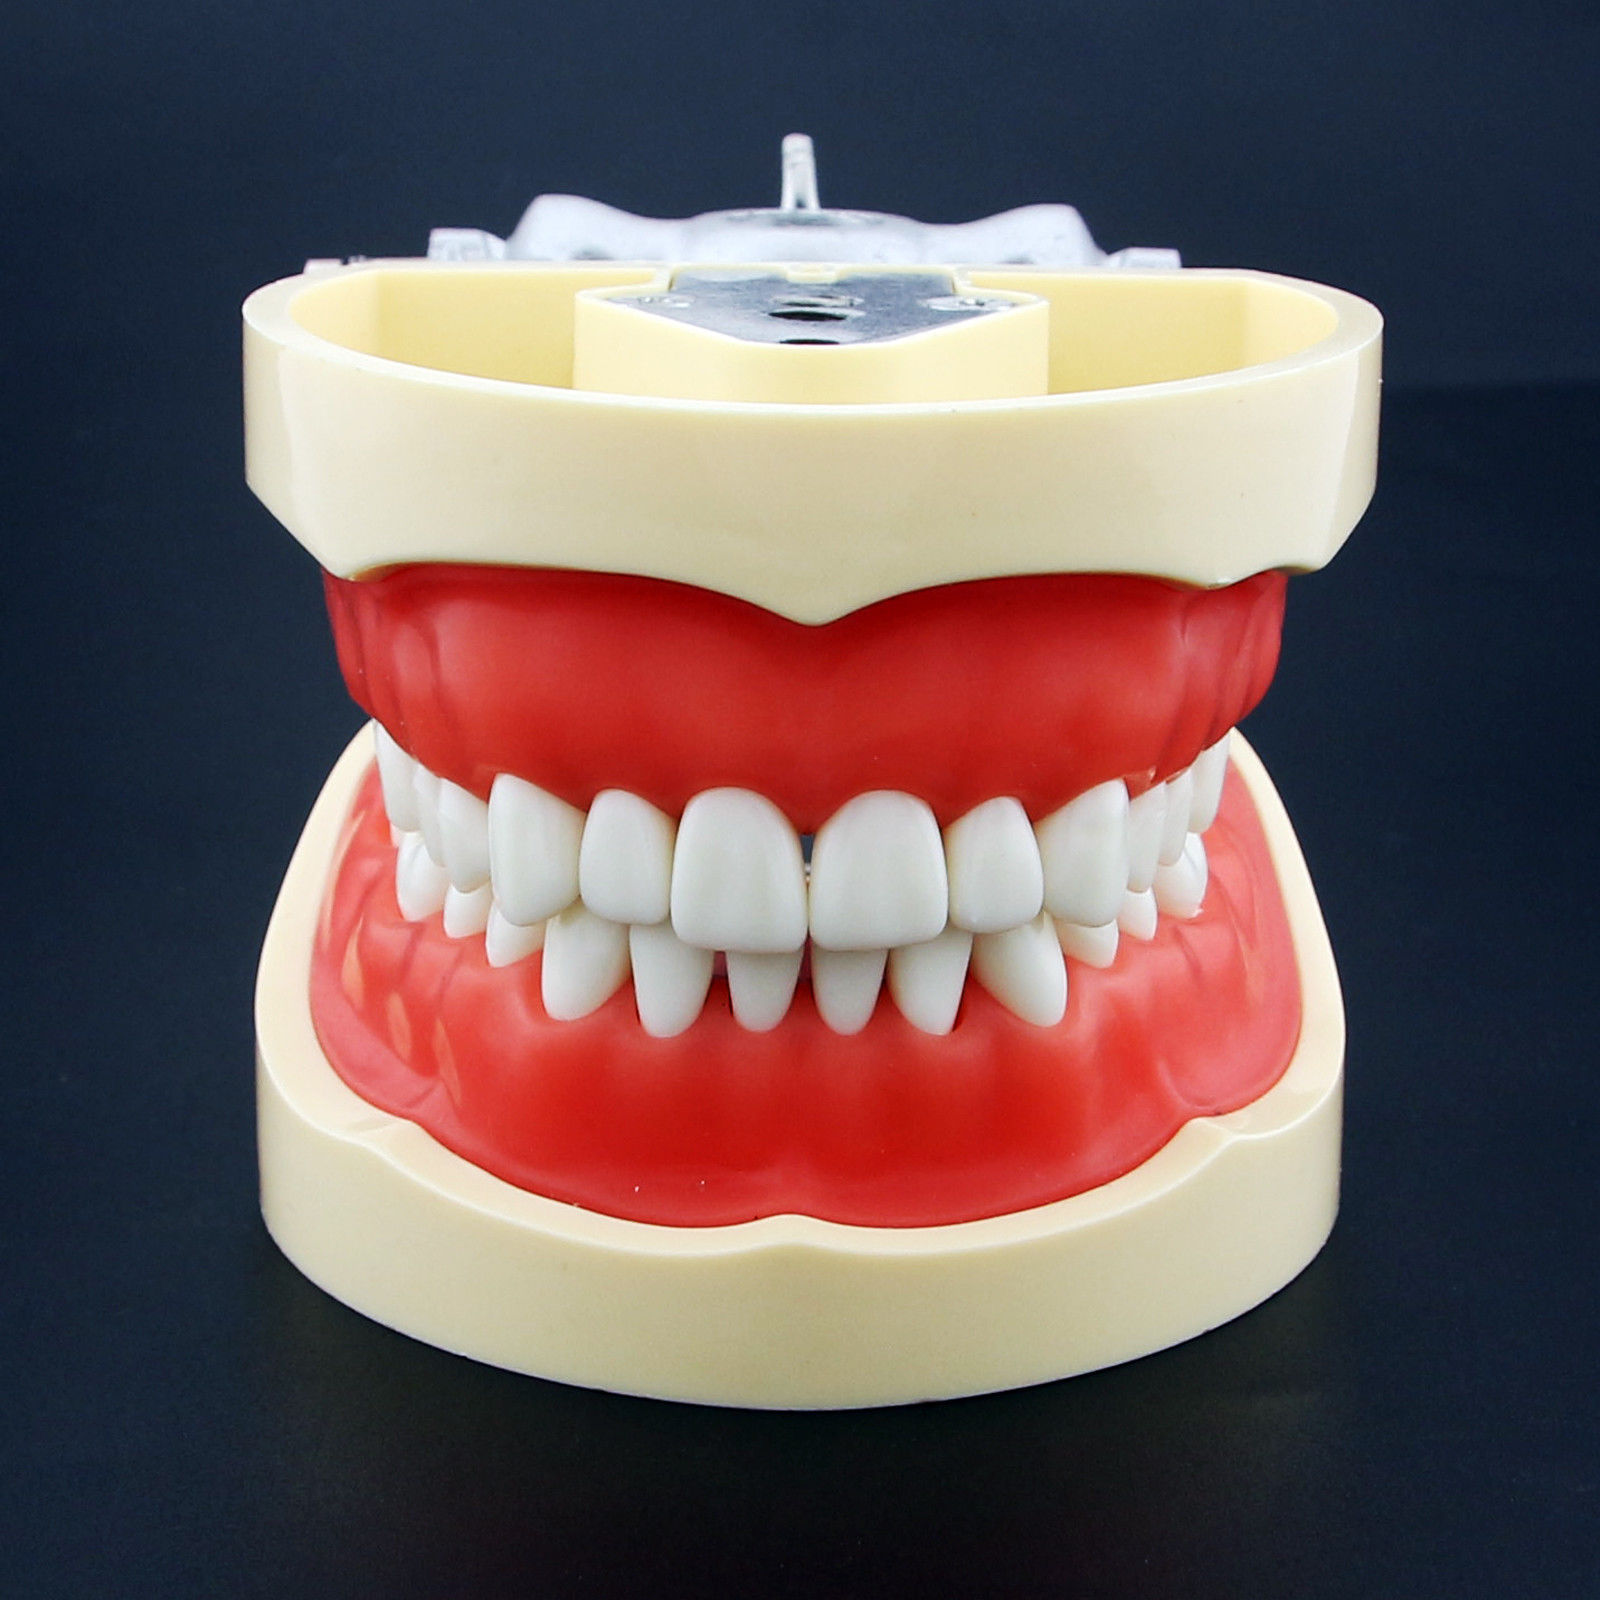 Dental All Removable Teeth Model 28 pcs Dental Teeth Model for Dental Practice teeth orthodontic model ceramic braces wrong jaw demonstration model orthodontics practice model